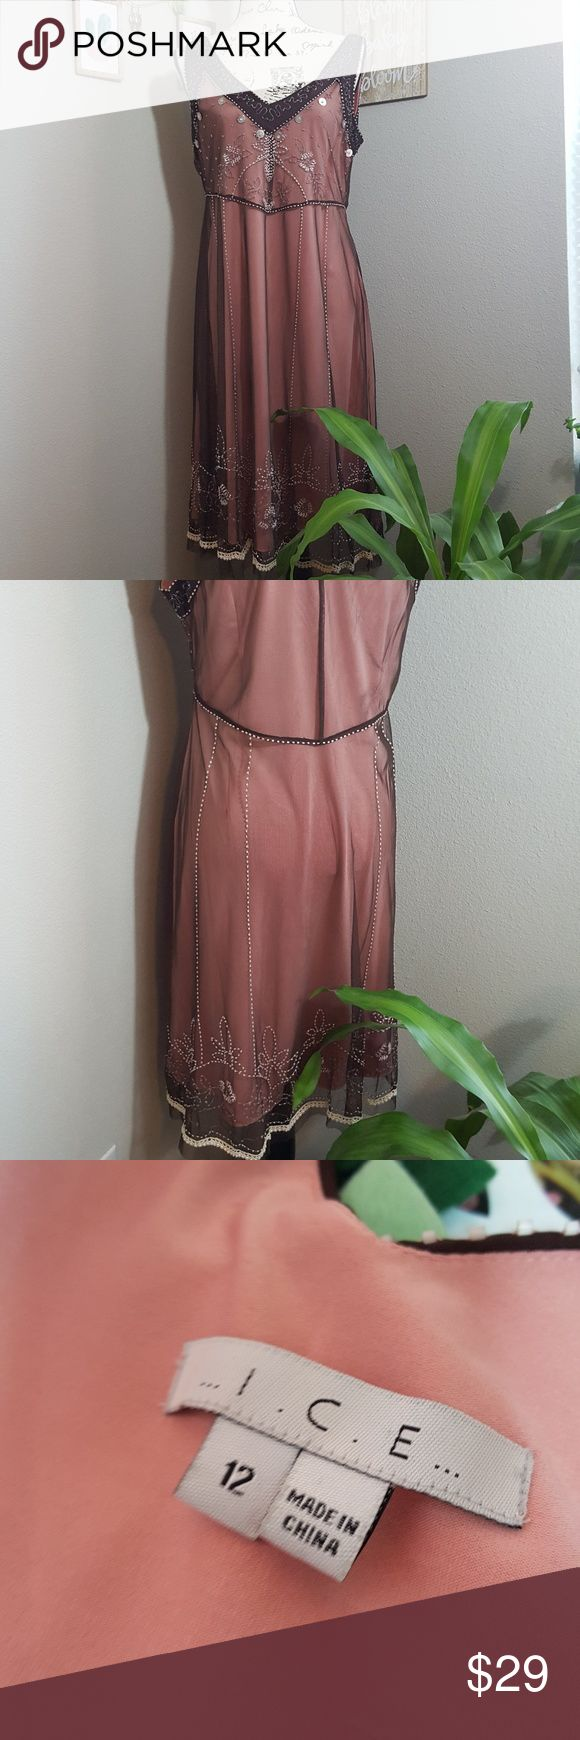 ICE Pink and Brown Embellished Shift Sooo pretty!! Definitely Gatsby esque. Light pink lining with sheer brown mesh like overlay with beautiful crystals and embellishments. Side zip. GUC prom wedding party dress Ice Dresses